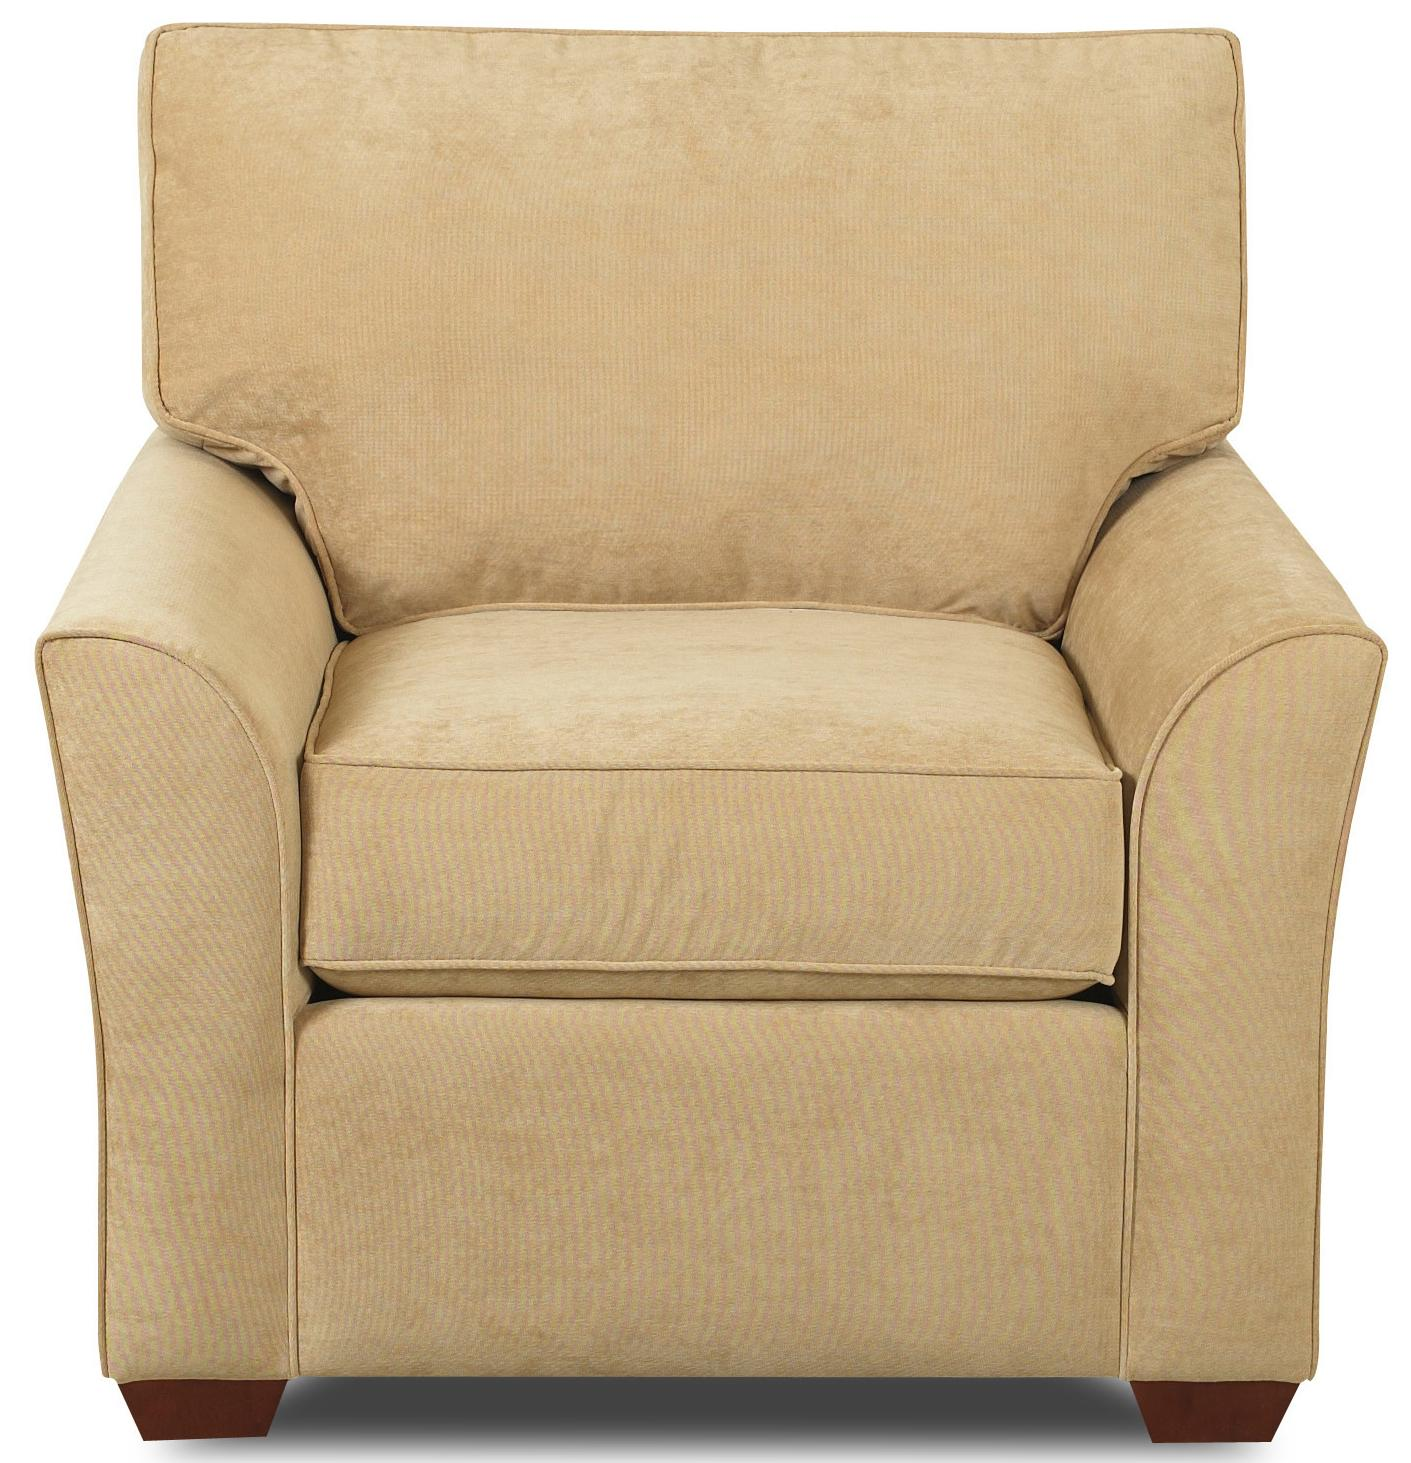 Klaussner Grady Chair - Item Number: K55200 C